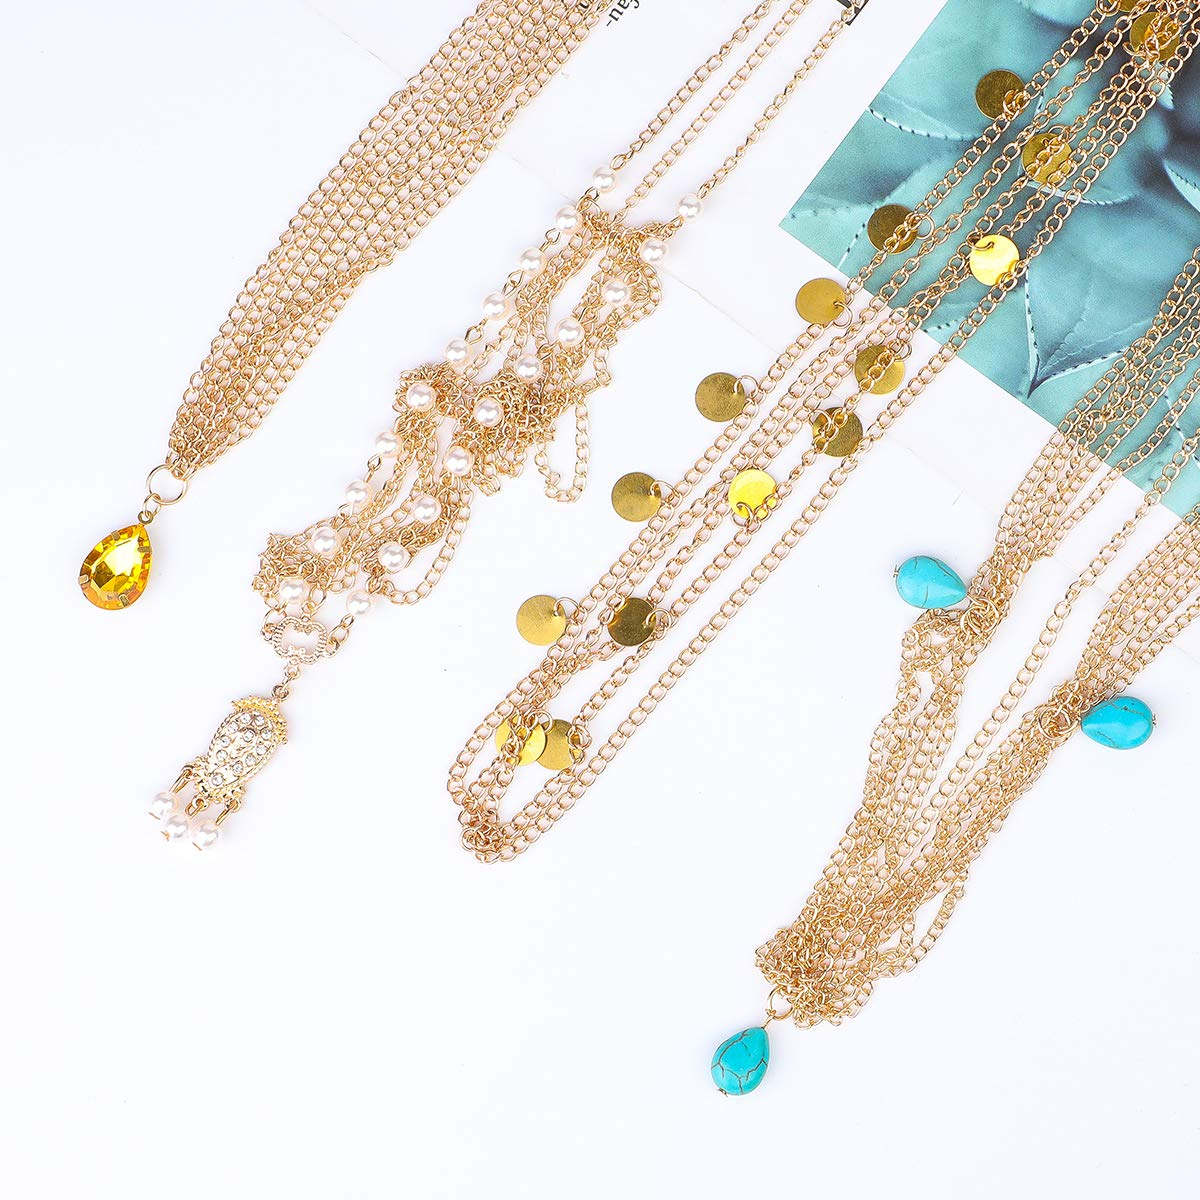 3 Designs Festival Hippy Boho Indian Headpiece Hair chain Jewellery Crystal Turquoise Gold Disc